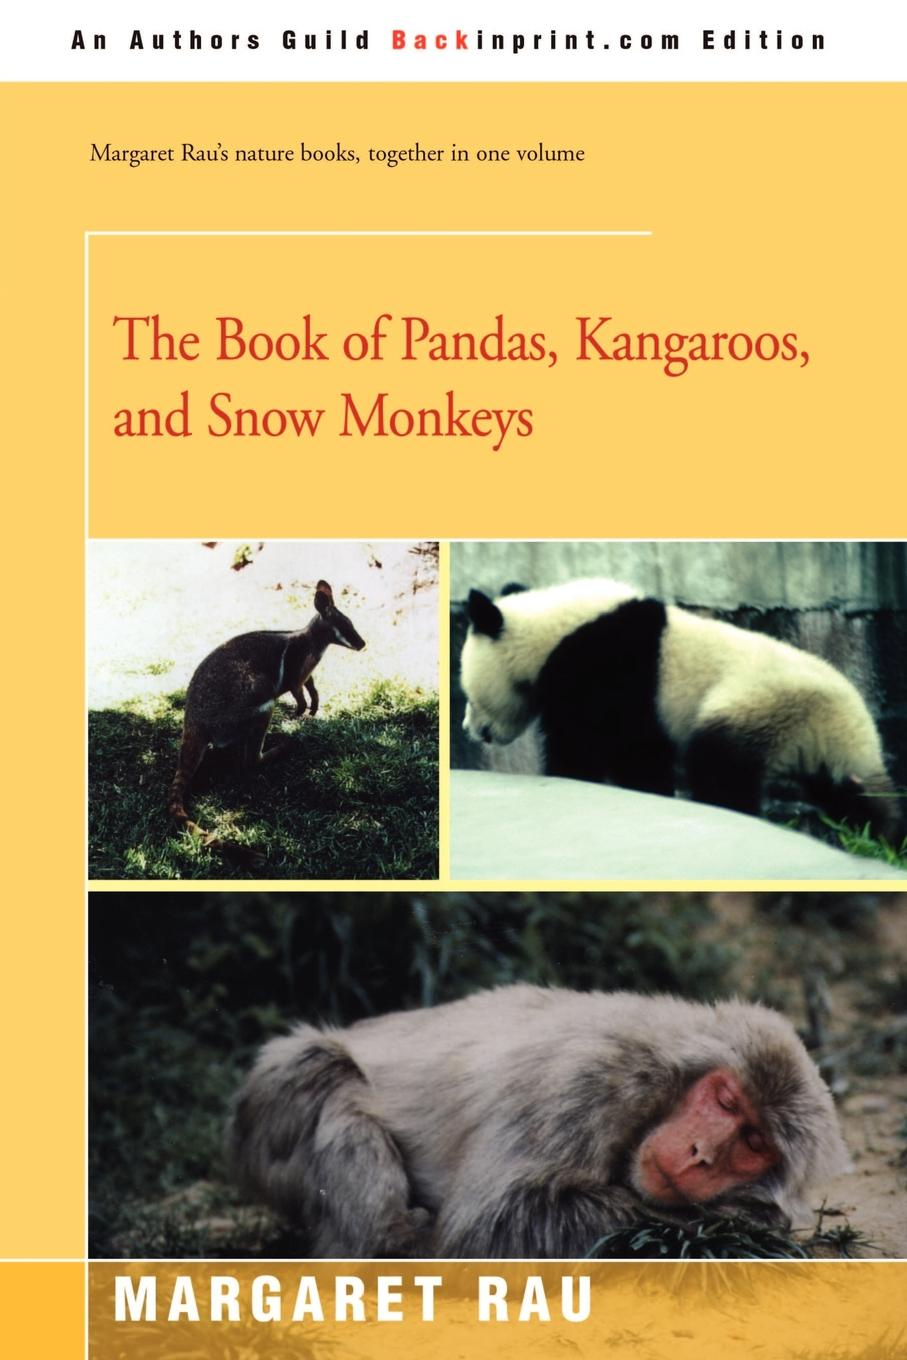 где купить Margaret Rau The Book of Pandas, Kangaroos, and Snow Monkeys недорого с доставкой